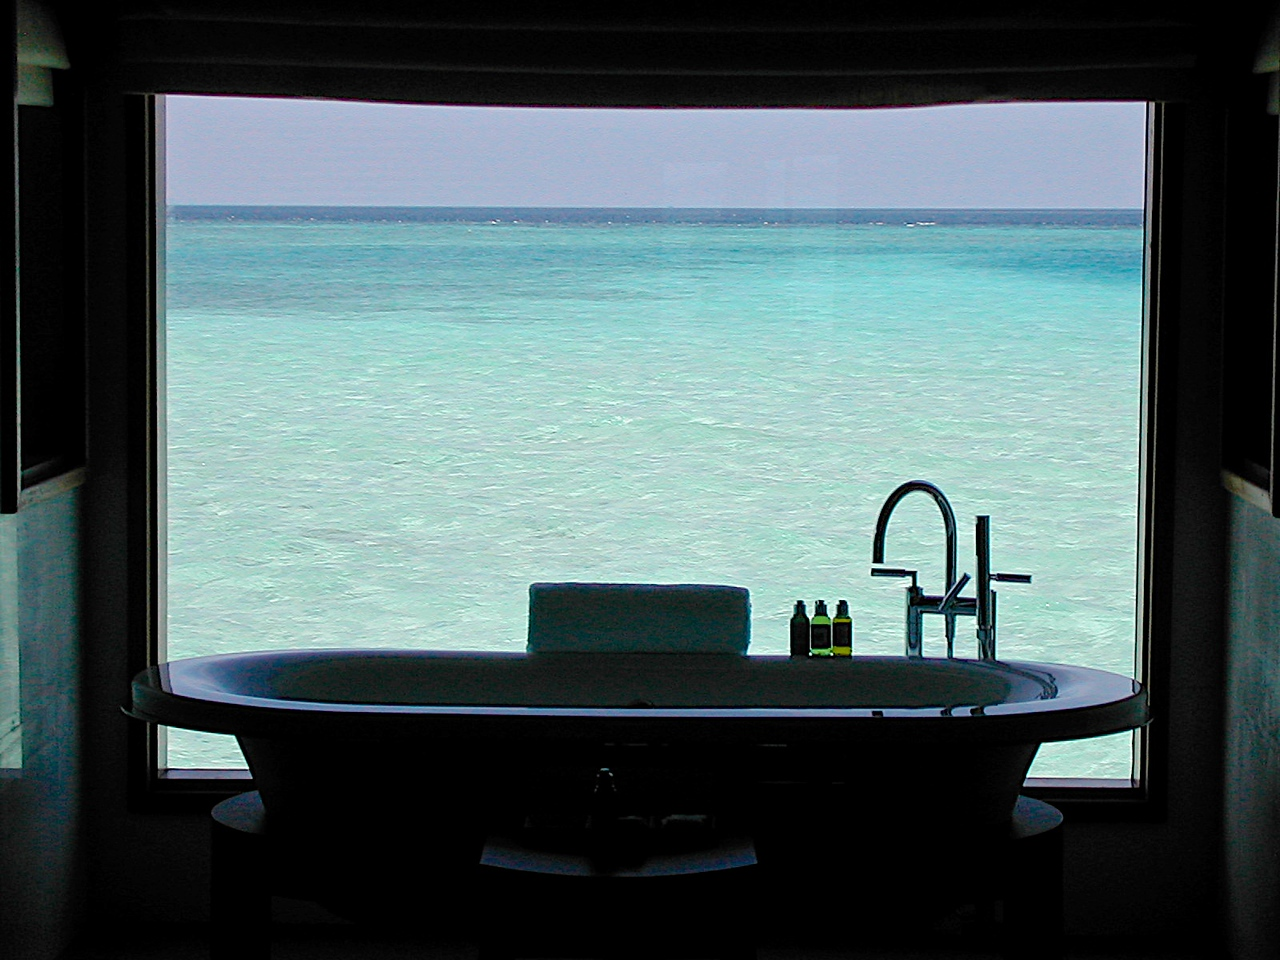 The large soaking tub in the overwater villas have a large window view of the Indian Ocean.